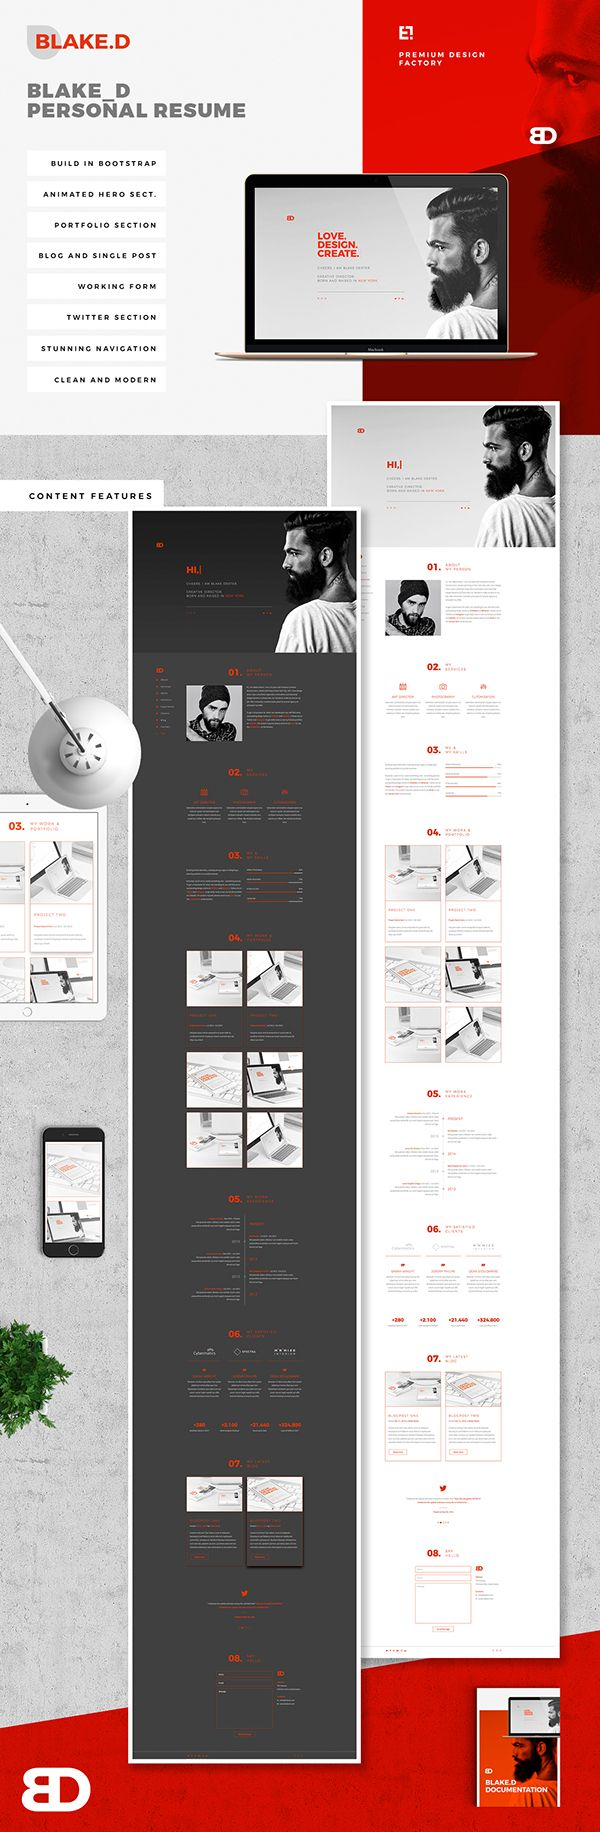 Best 25 Html contact form ideas on Pinterest Personal website